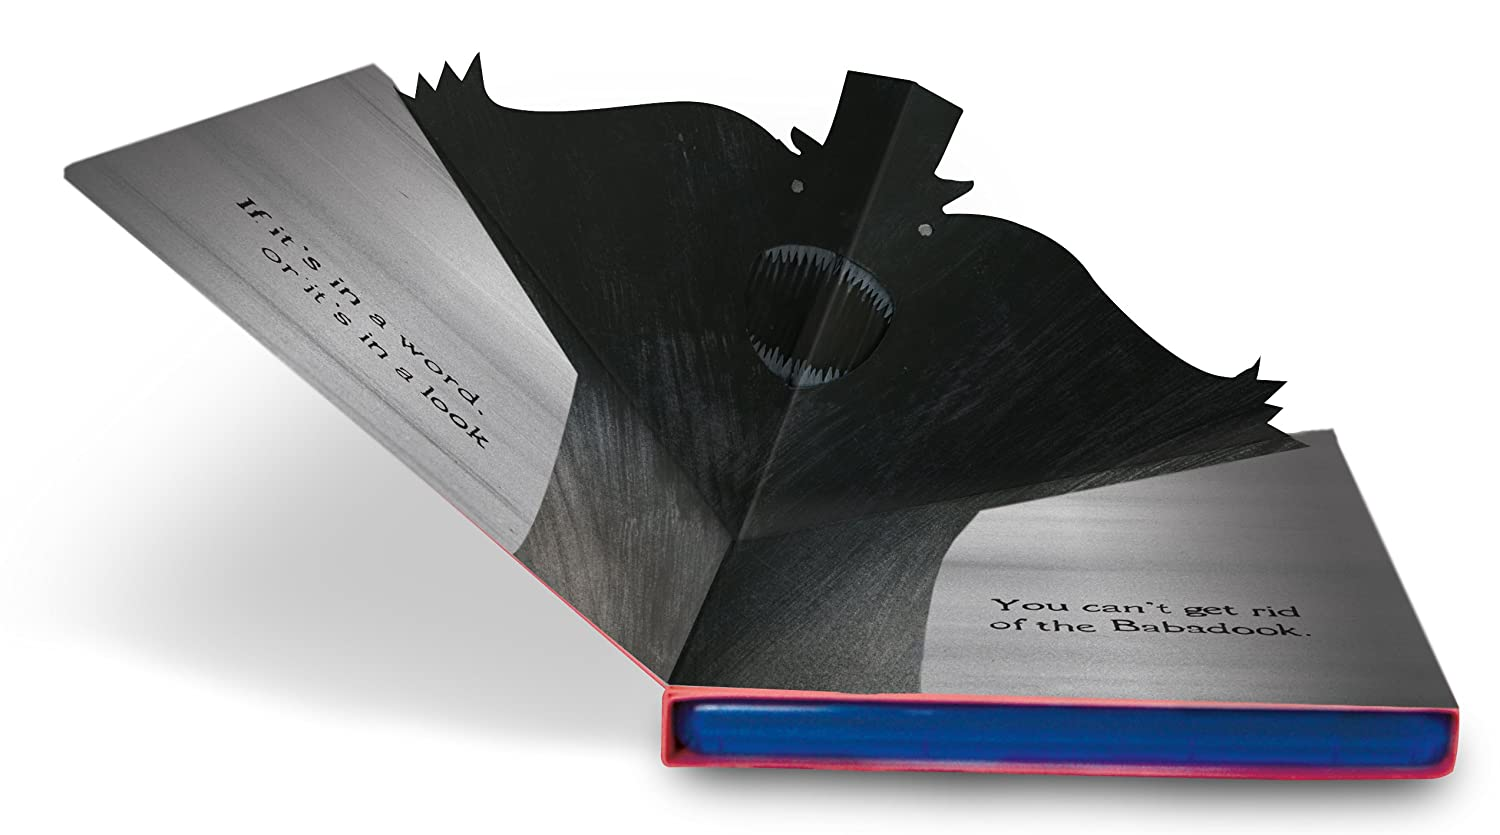 Amazon.com: The Babadook (Special Edition) [Deluxe Packaging] [Blu ...